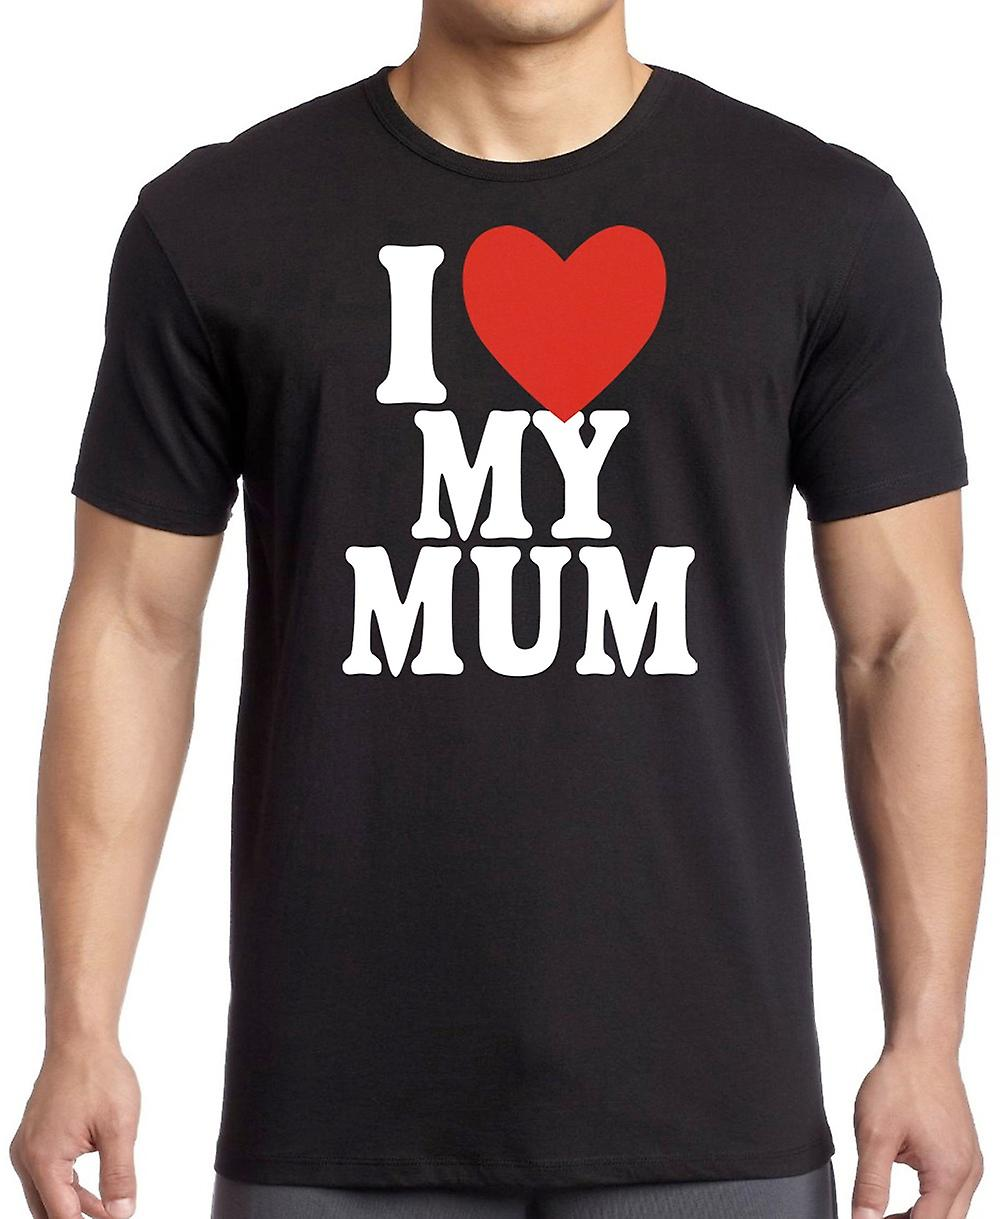 I Love My Mum - Cute Kids T Shirt